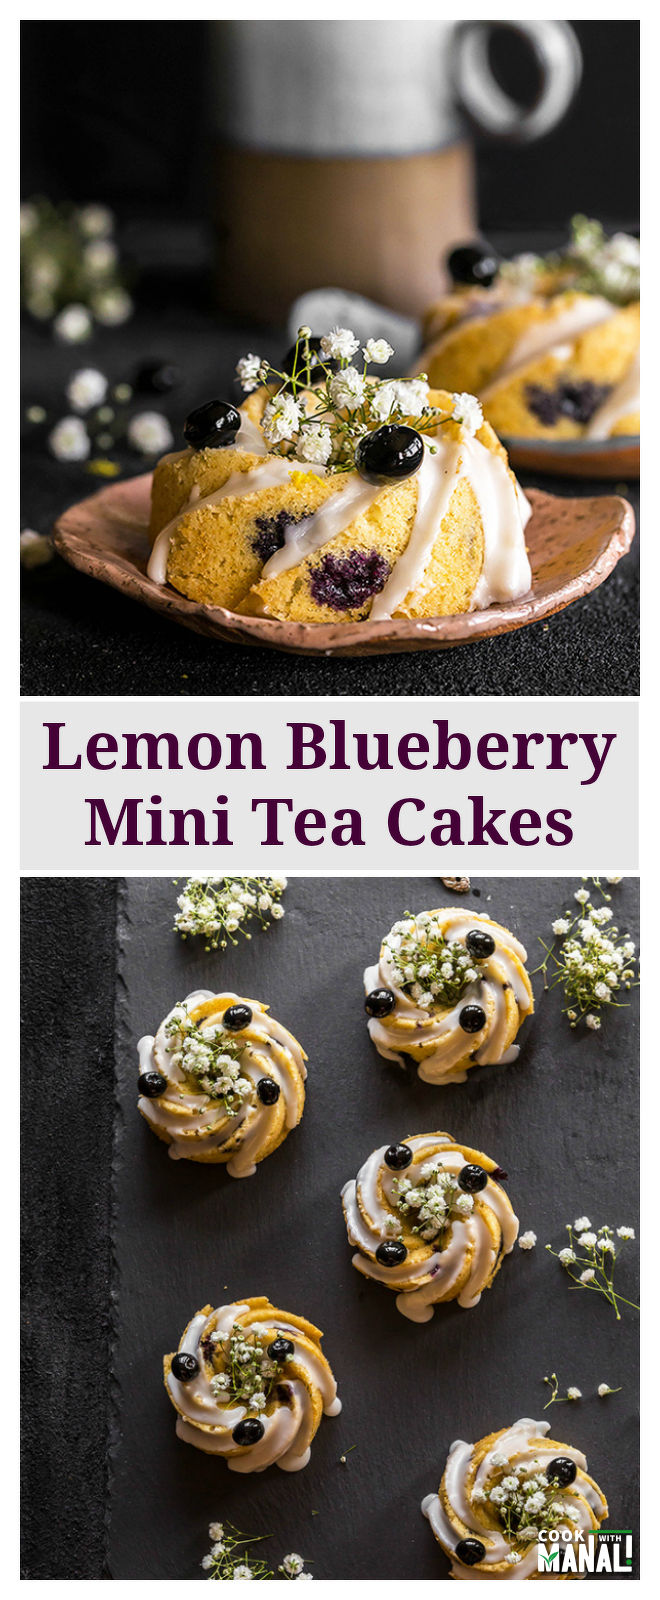 Lemon Blueberry Tea Cakes - Cook With Manali